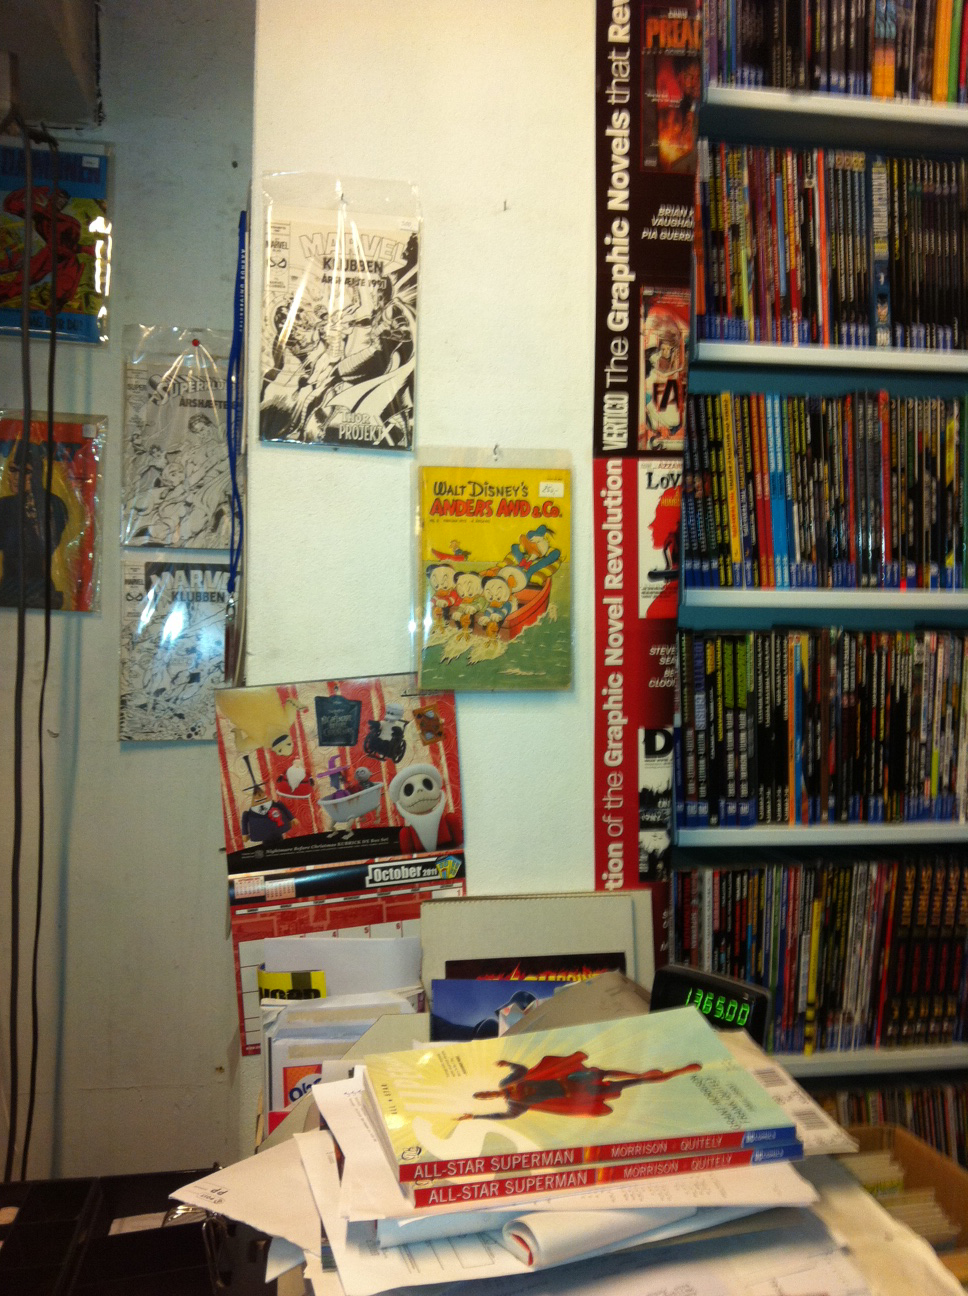 Danish comic book store in Aarhus Jutland